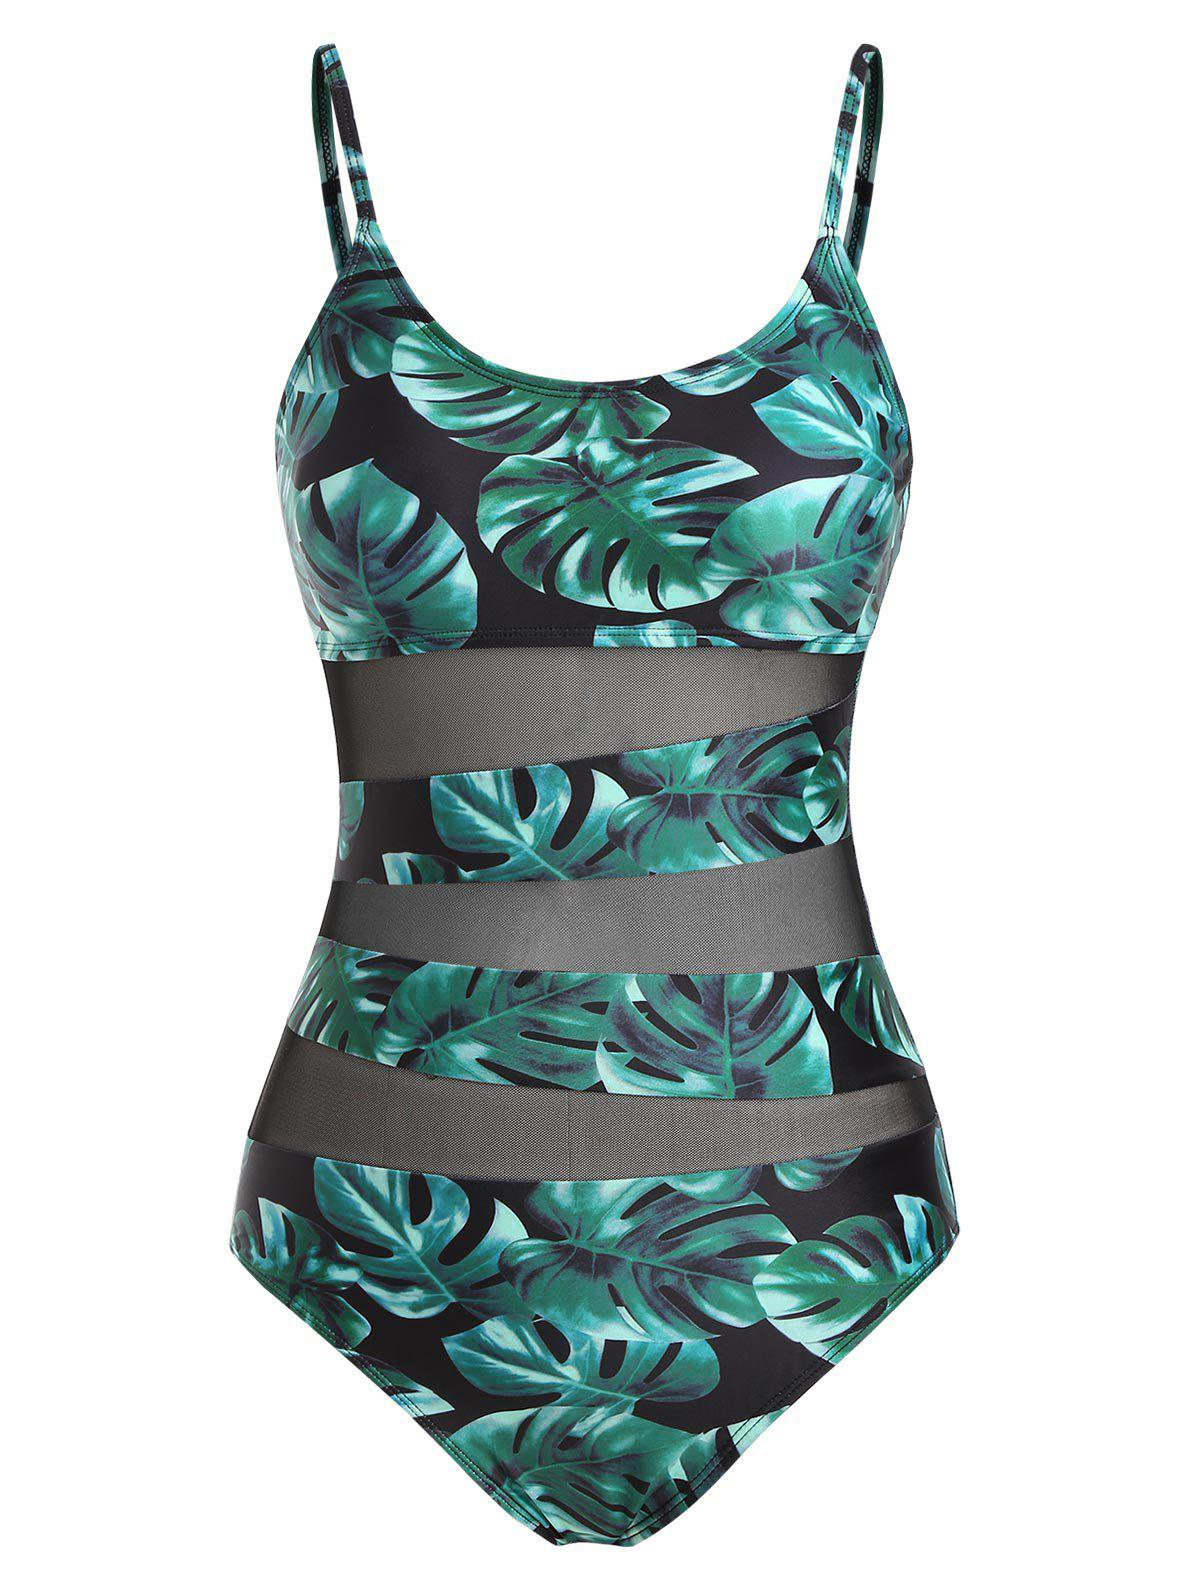 Store Mesh Insert Leaf Print Cami One-piece Swimsuit